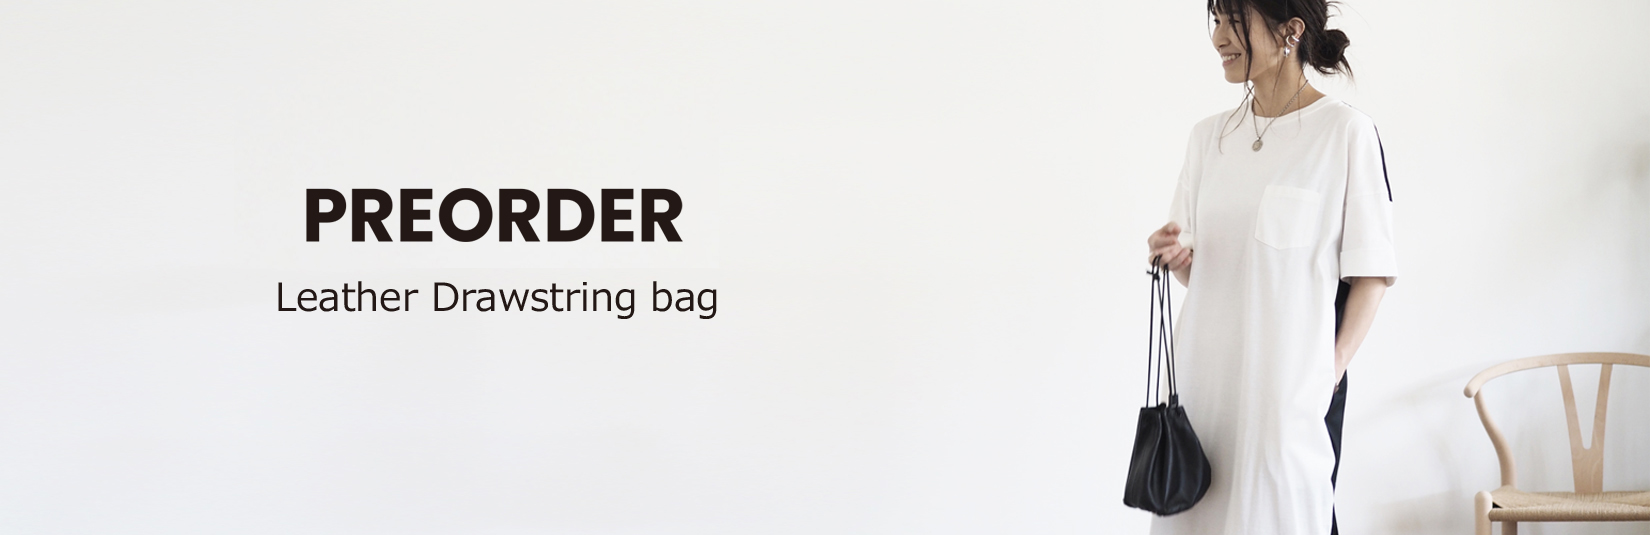 ANIECA Leather Drawstring bag PREORDER